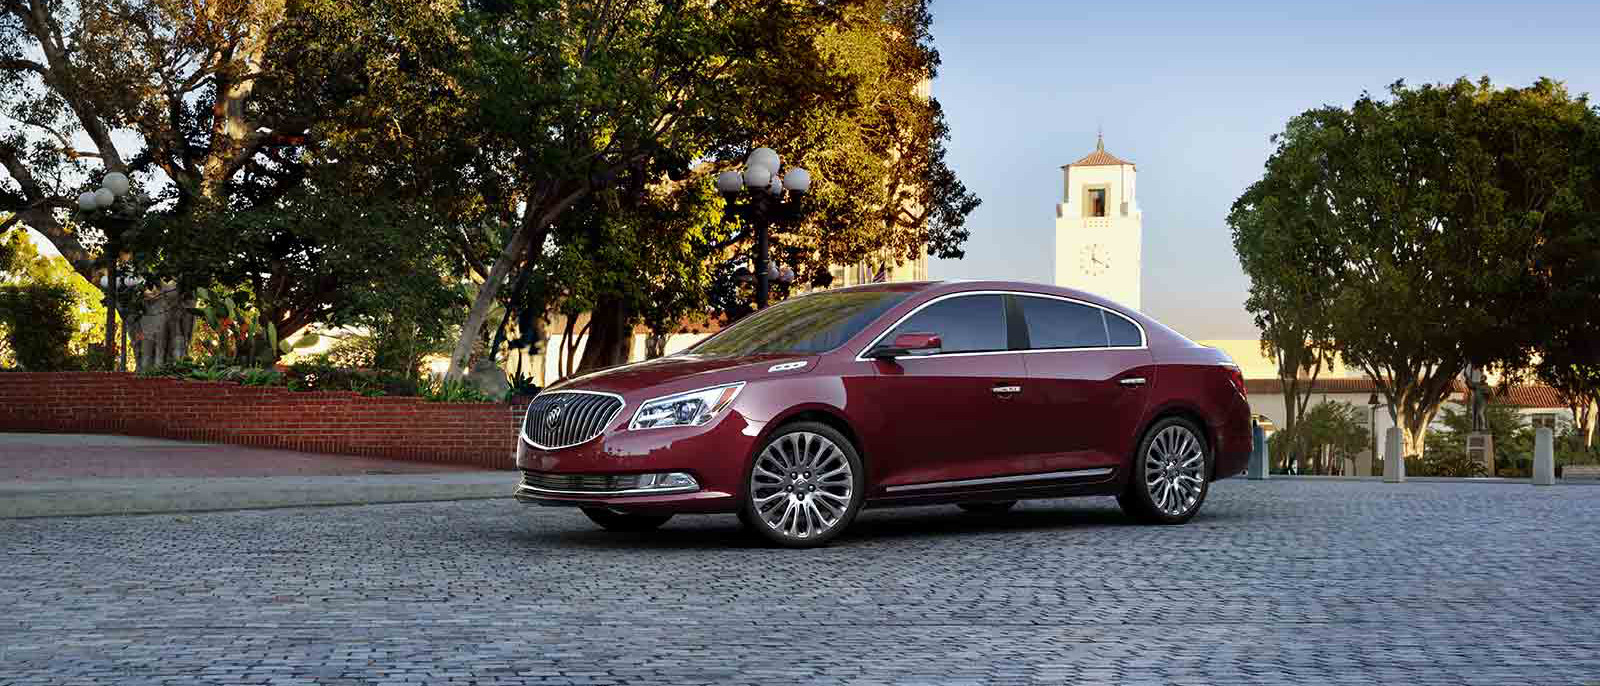 pages vehicles buick united galleries content states pressroom detail photos en lacrosse media images us